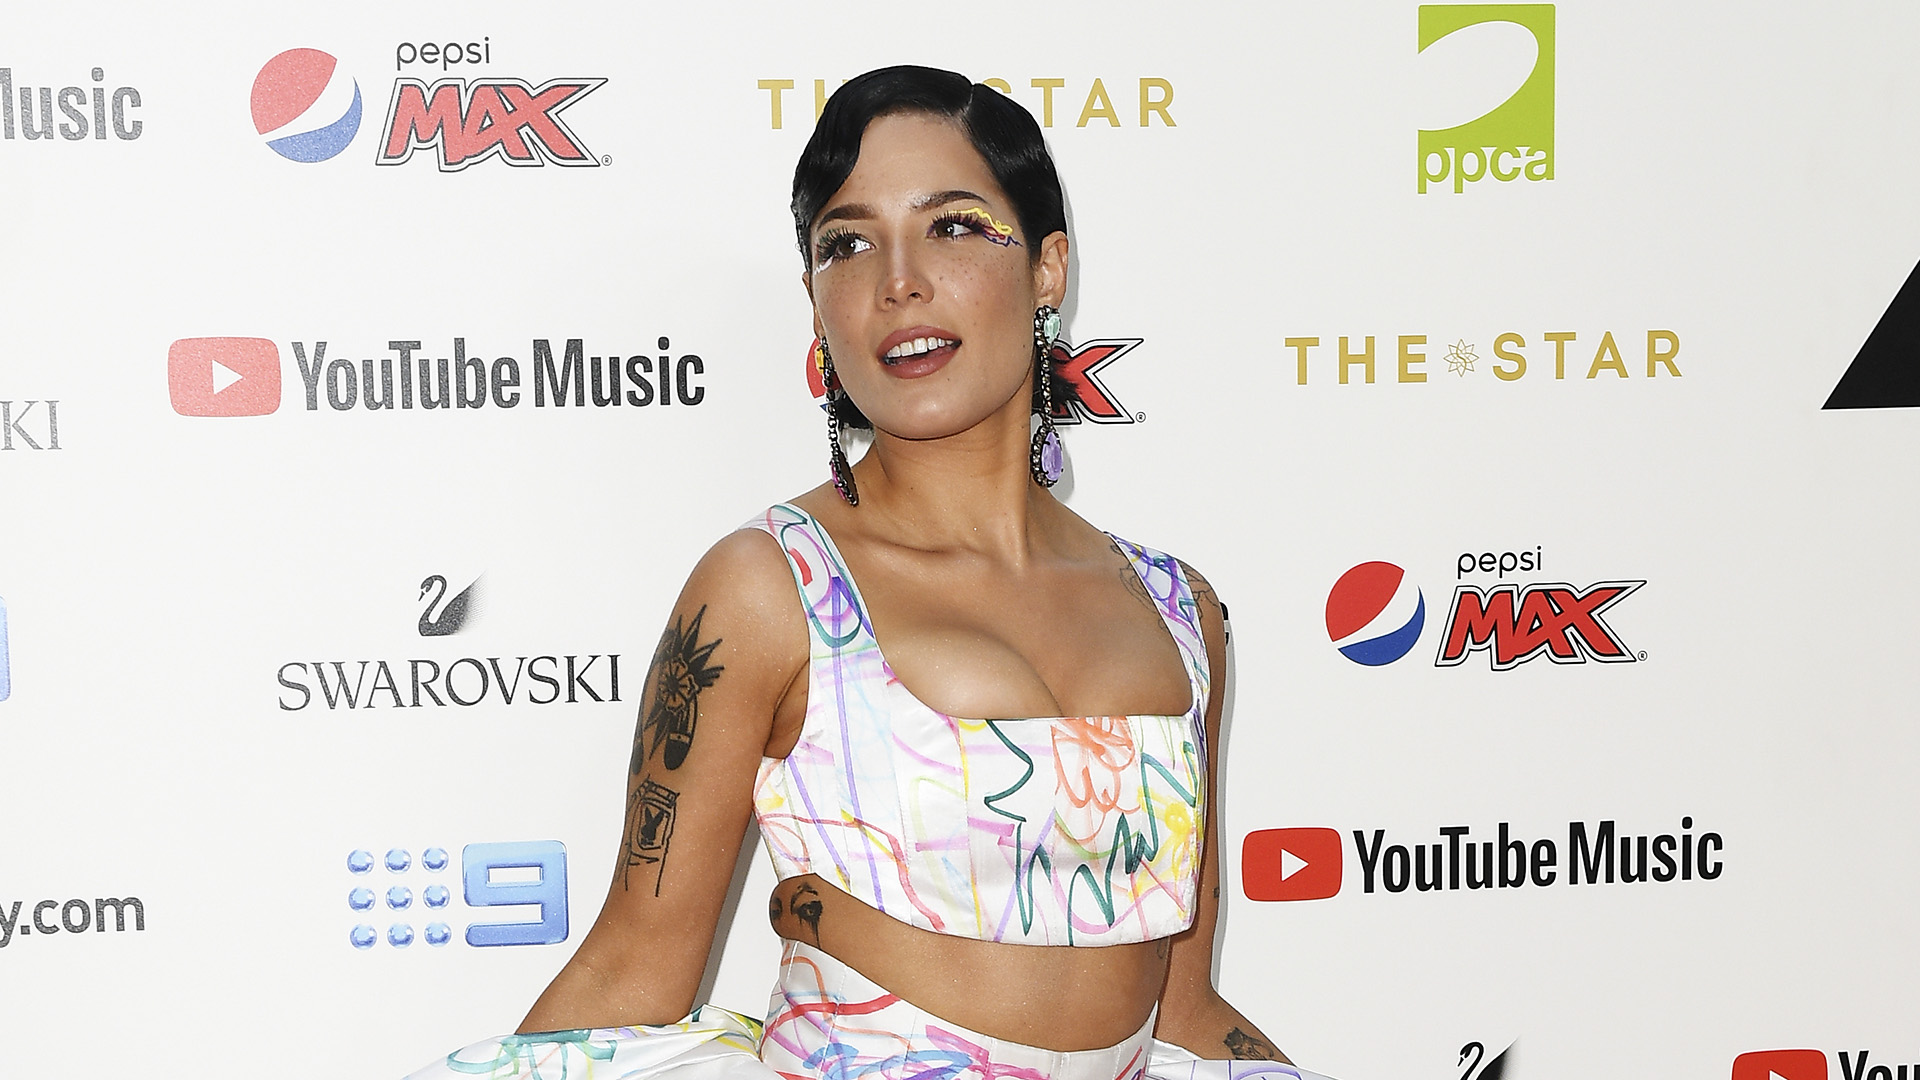 Halsey To Debut 'If I Can't Have Love, I Want Power' Film Ahead Of Album